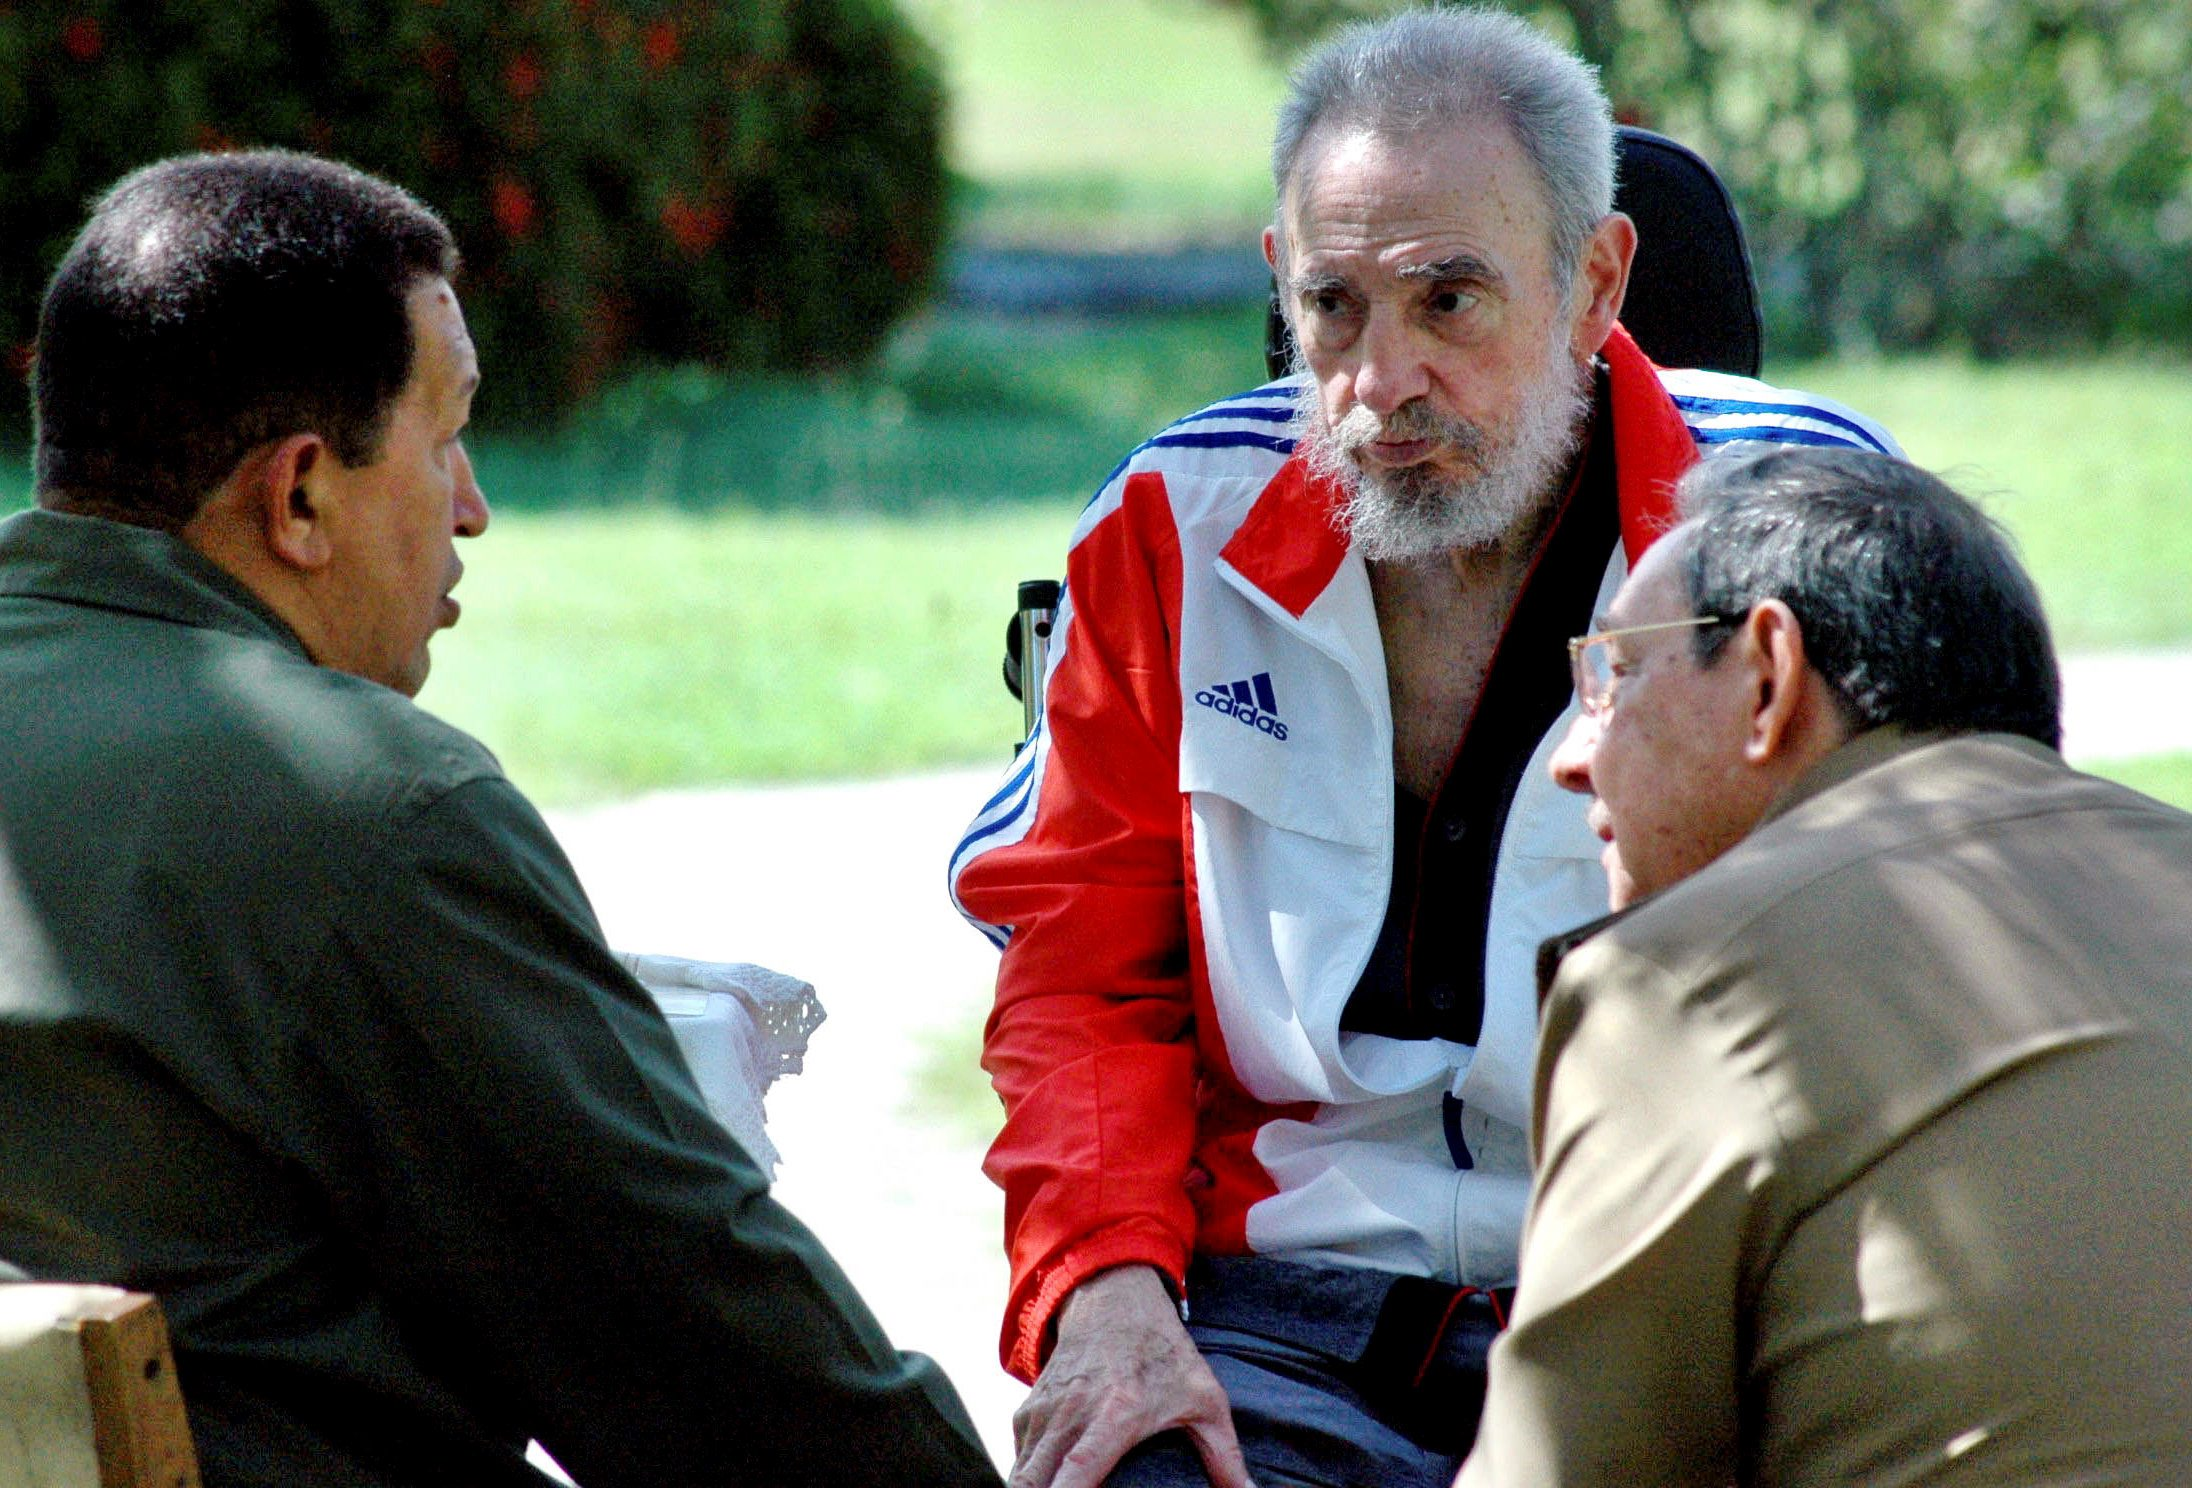 Former Cuban President Fidel Castro listens during a meeting with his brother Cuban President Raul Castro (R) and Venezuela's President Hugo Chavez (L) in Havana in this June 17, 2008 file photo. REUTERS/Estudios Revolucion/Handout/File Photo      ATTENTION EDITORS - THIS IMAGE WAS PROVIDED BY A THIRD PARTY. EDITORIAL USE ONLY.